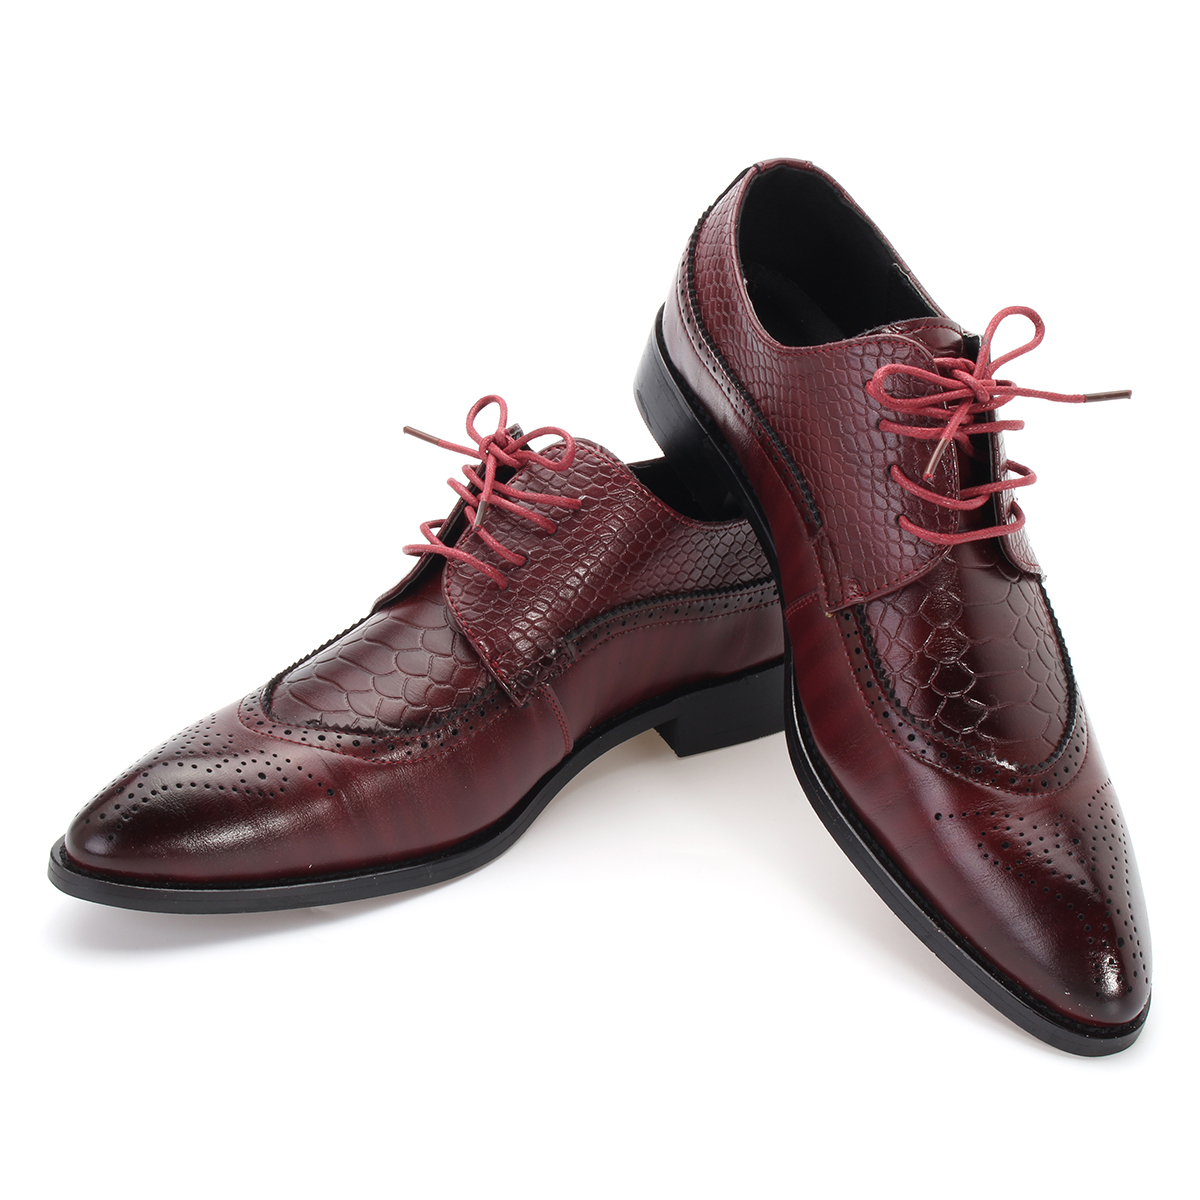 Men's Modern Brogue Carved Classic Pointed Toe Dress Shoes